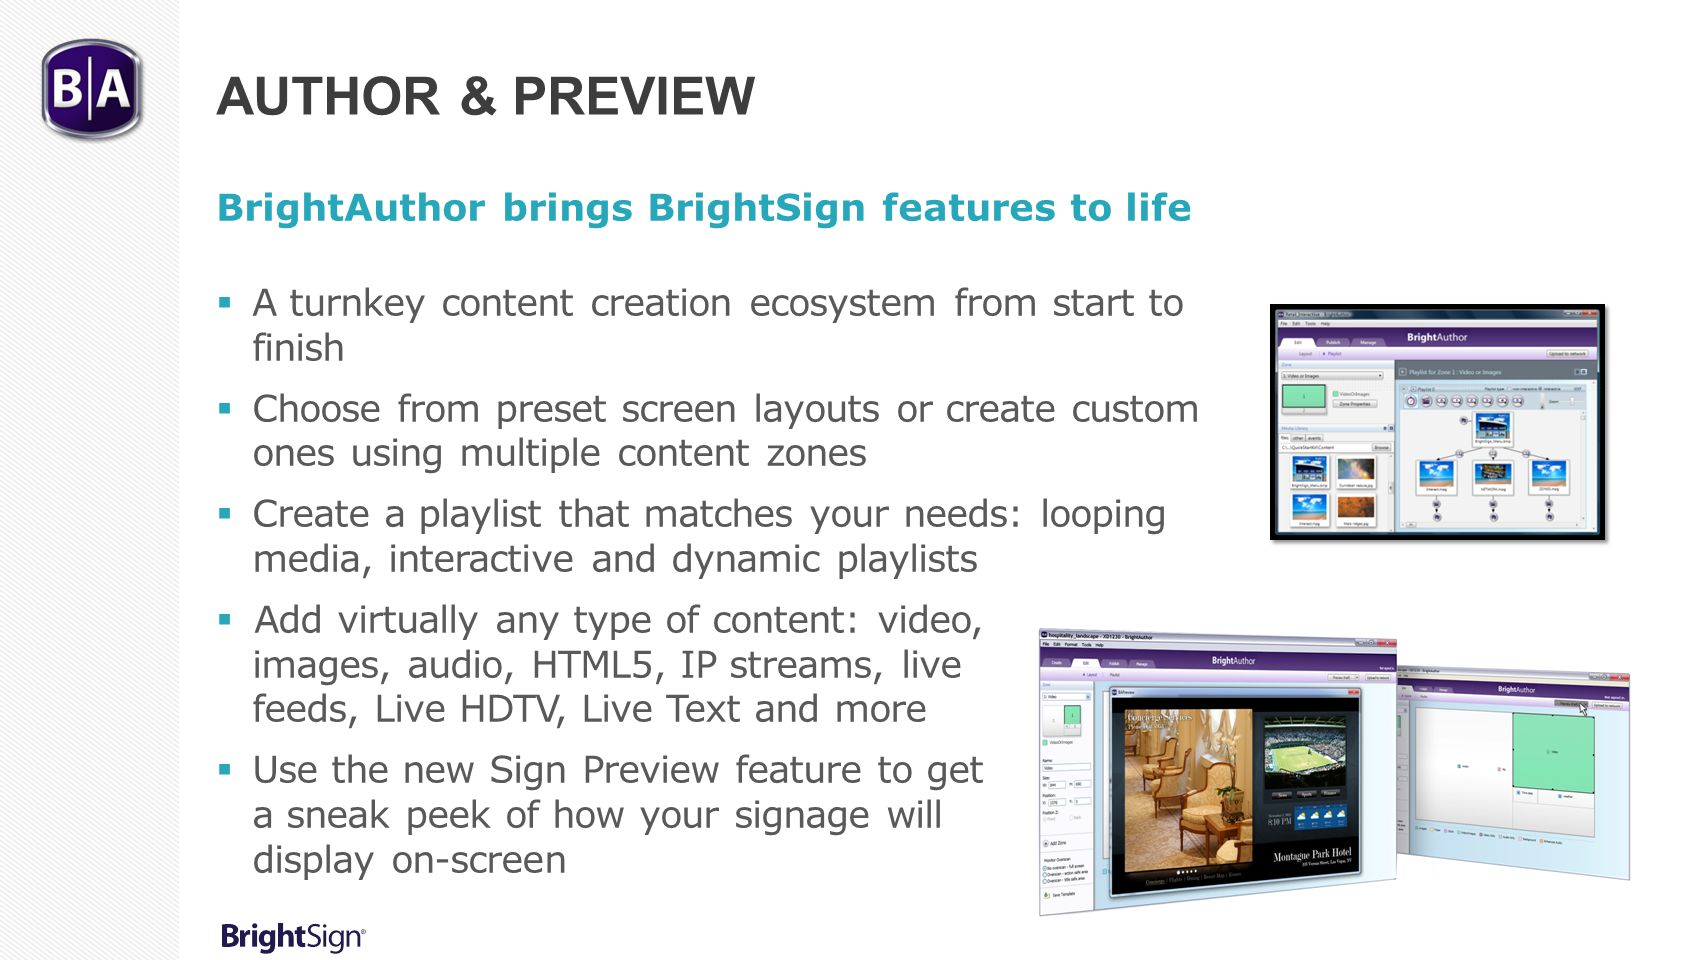 Author & Preview BrightAuthor brings BrightSign features to life